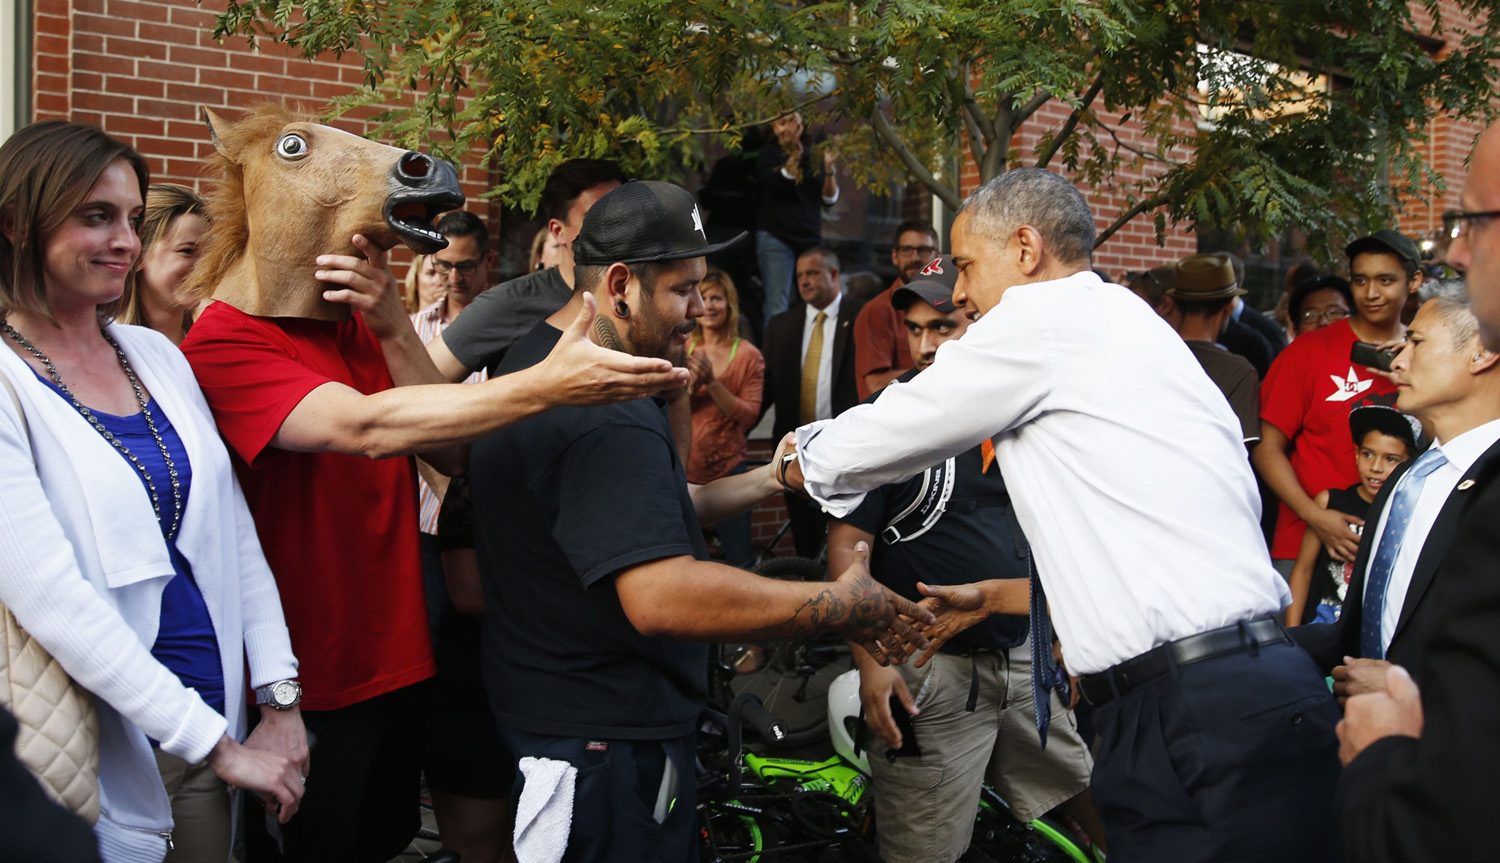 A man wearing a horse mask reaches out to shake hands with U.S. President Barack Obama during a walkabout in Denver on July 8, 2014.